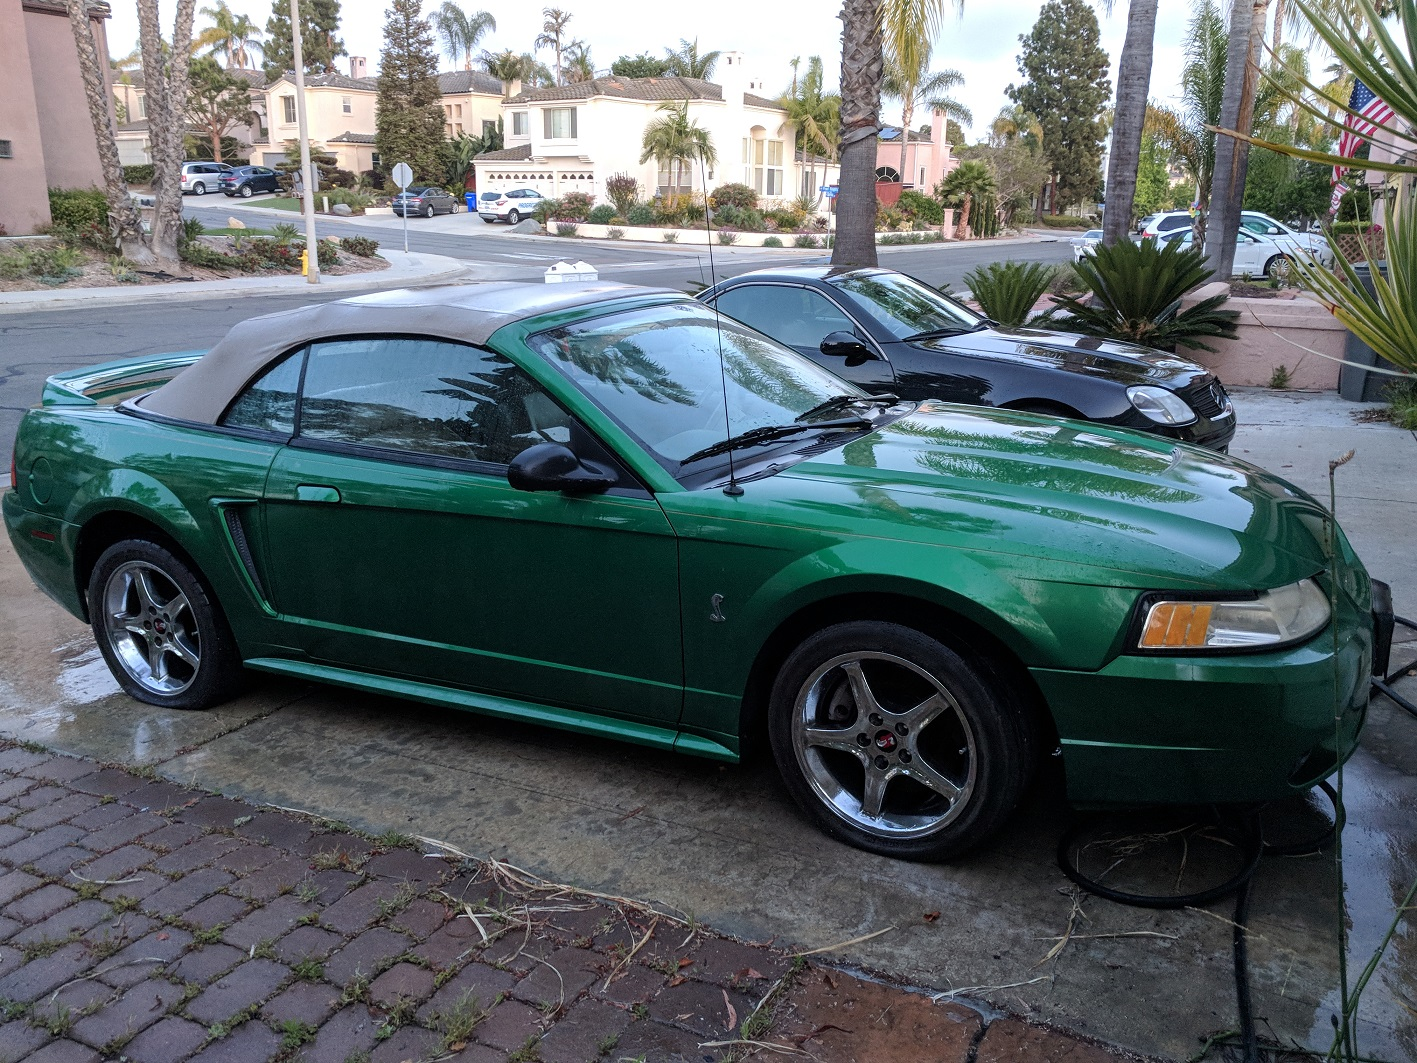 hight resolution of engine issue on 1999 cobra repair or sell as is img 20180531 200025 jpg